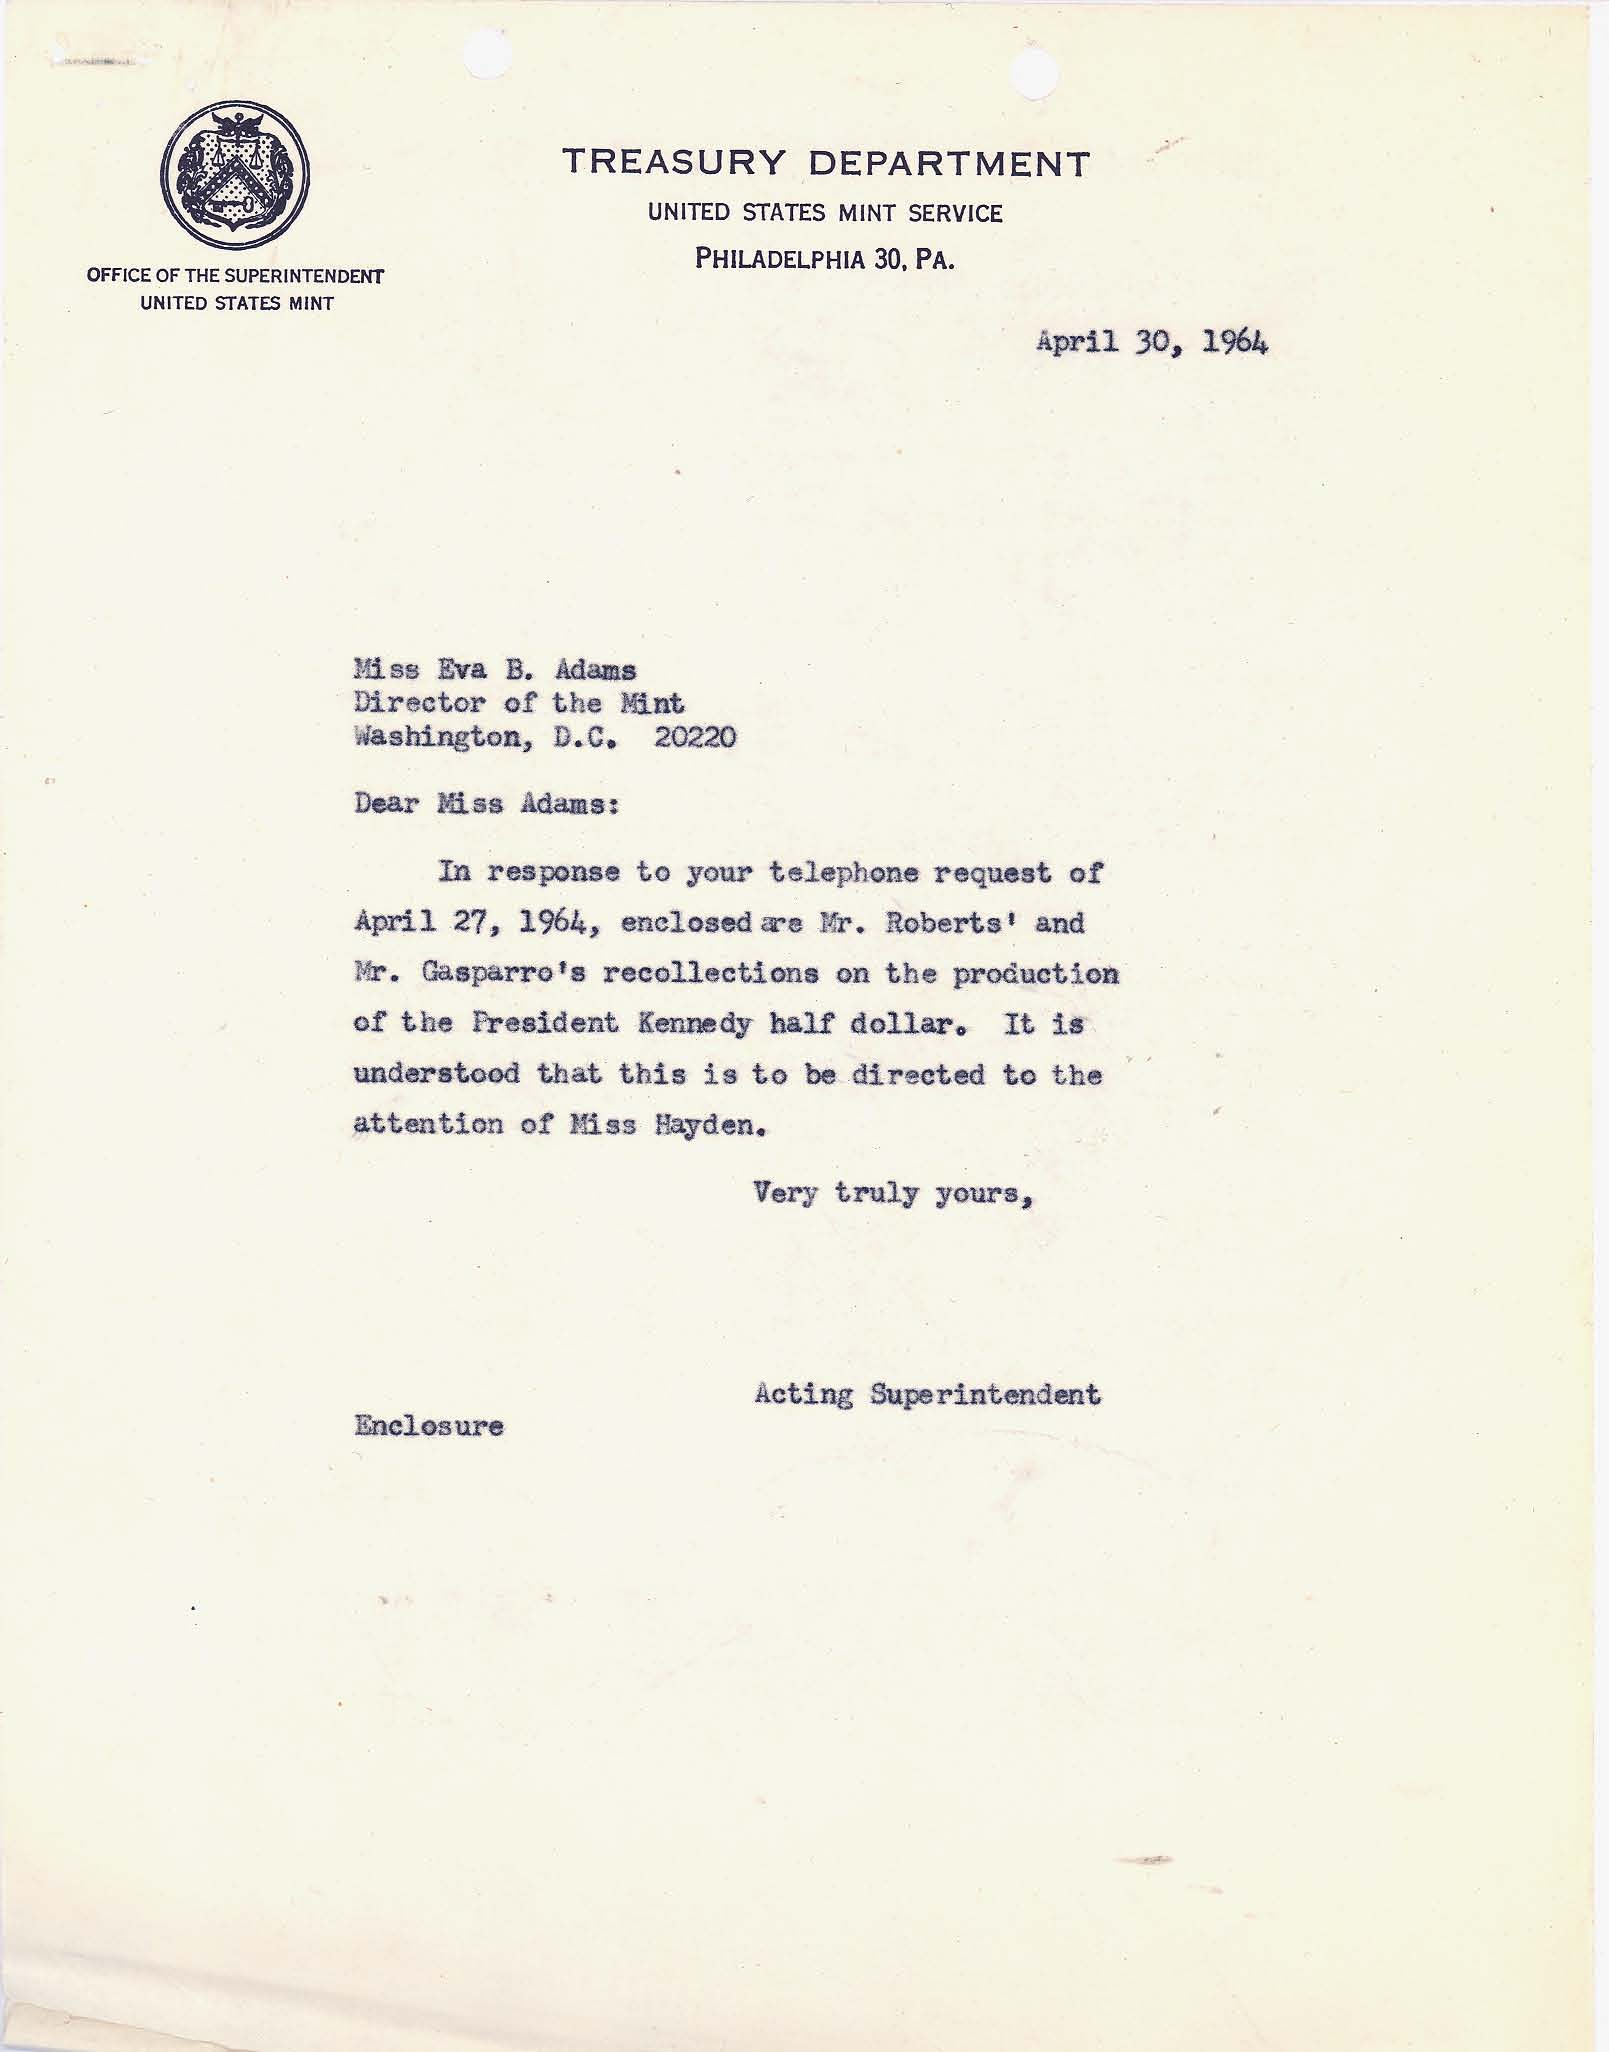 Letter to Director Adams: Kennedy Half Dollar Production, Page 1